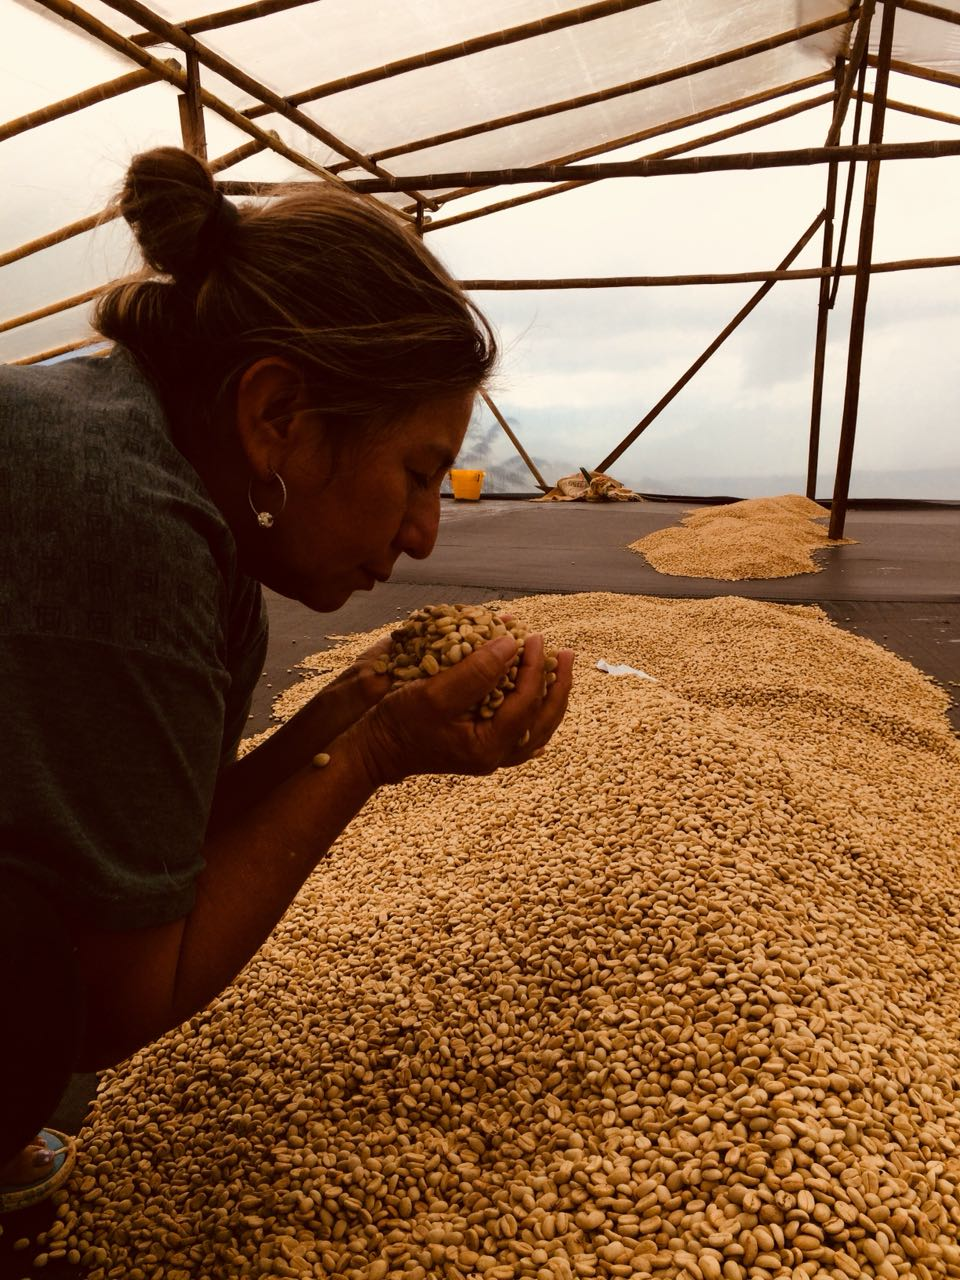 Maria Bercelia on her farm, Finca Los Angeles, in Acevedo, Huila, Colombia.